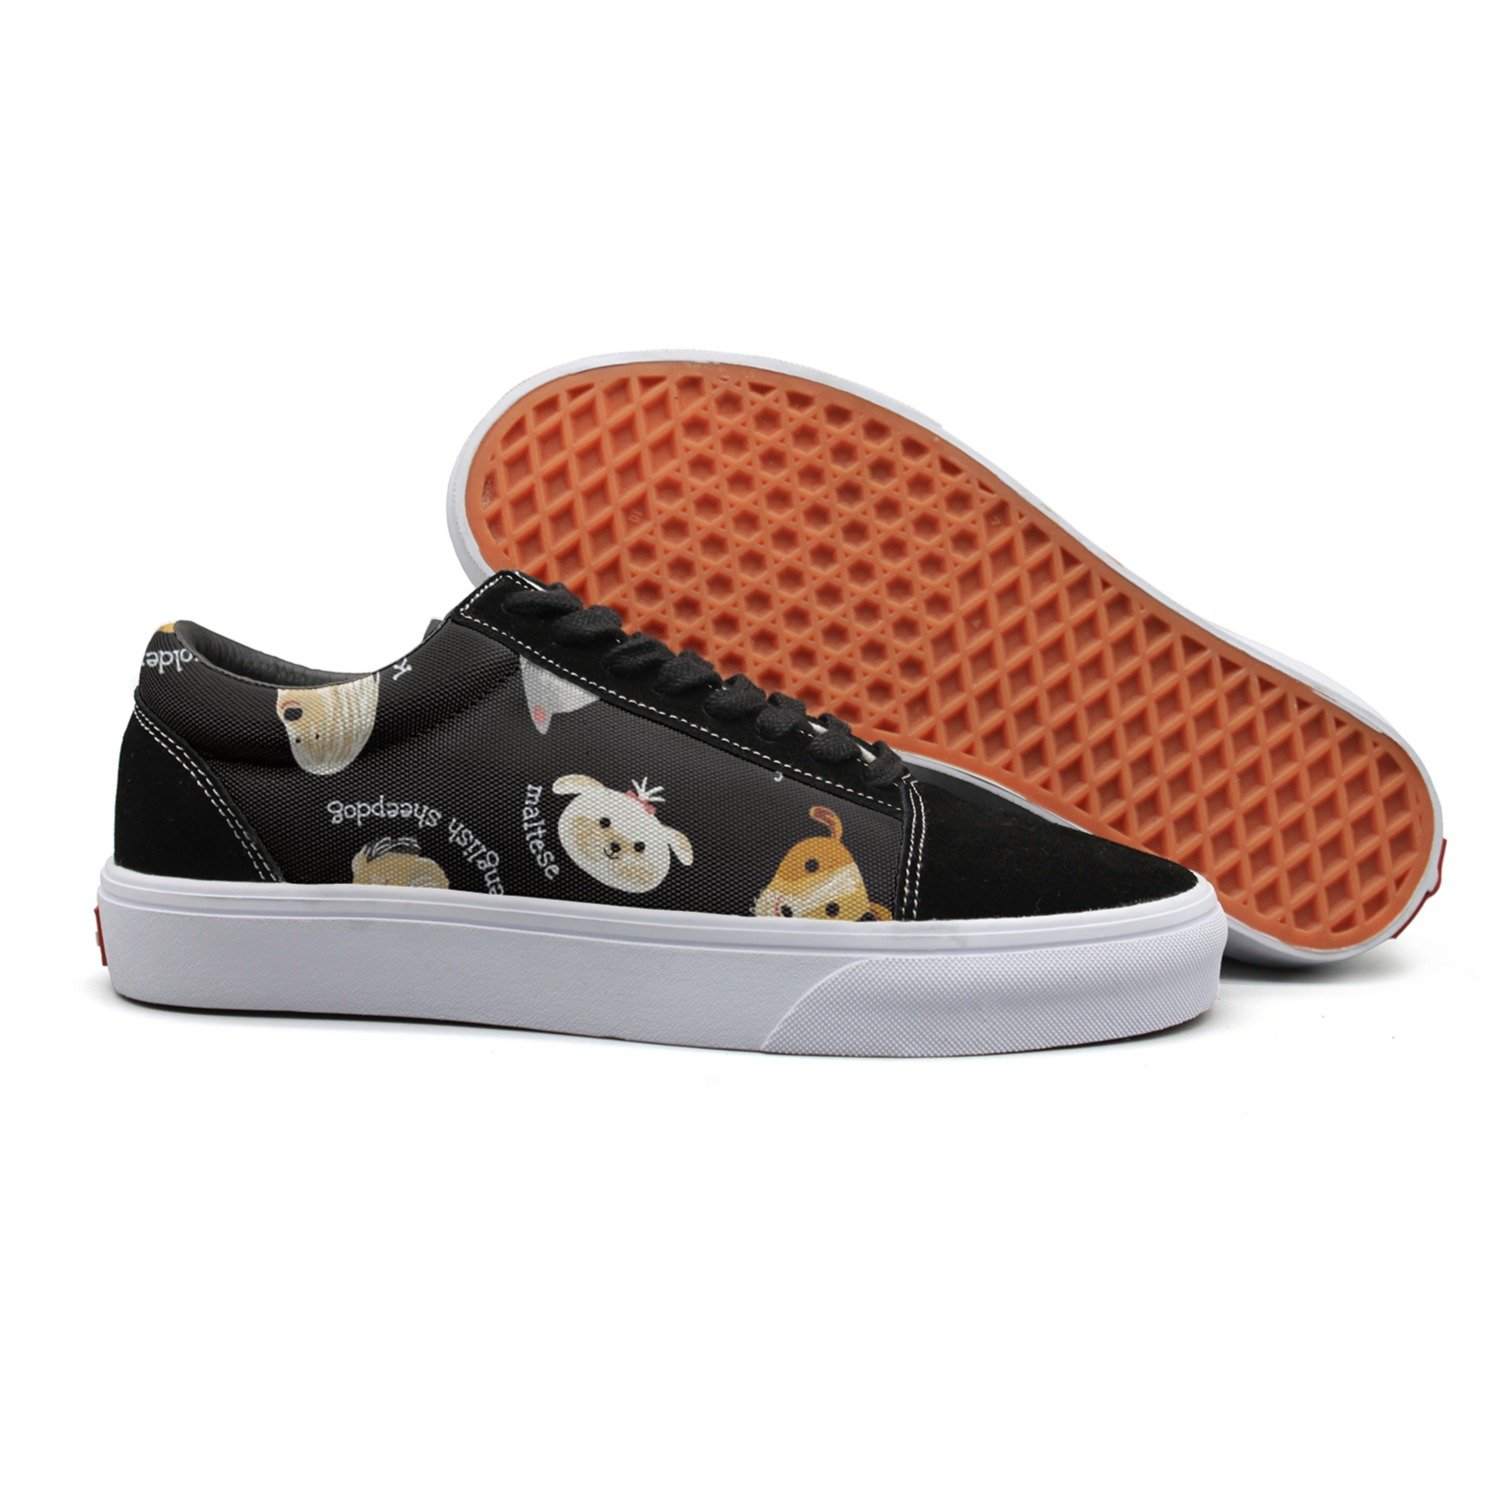 VCERTHDF Print Trendy My Dogs Husky Pug Beagle Rottaf Low Top Canvas Sneakers